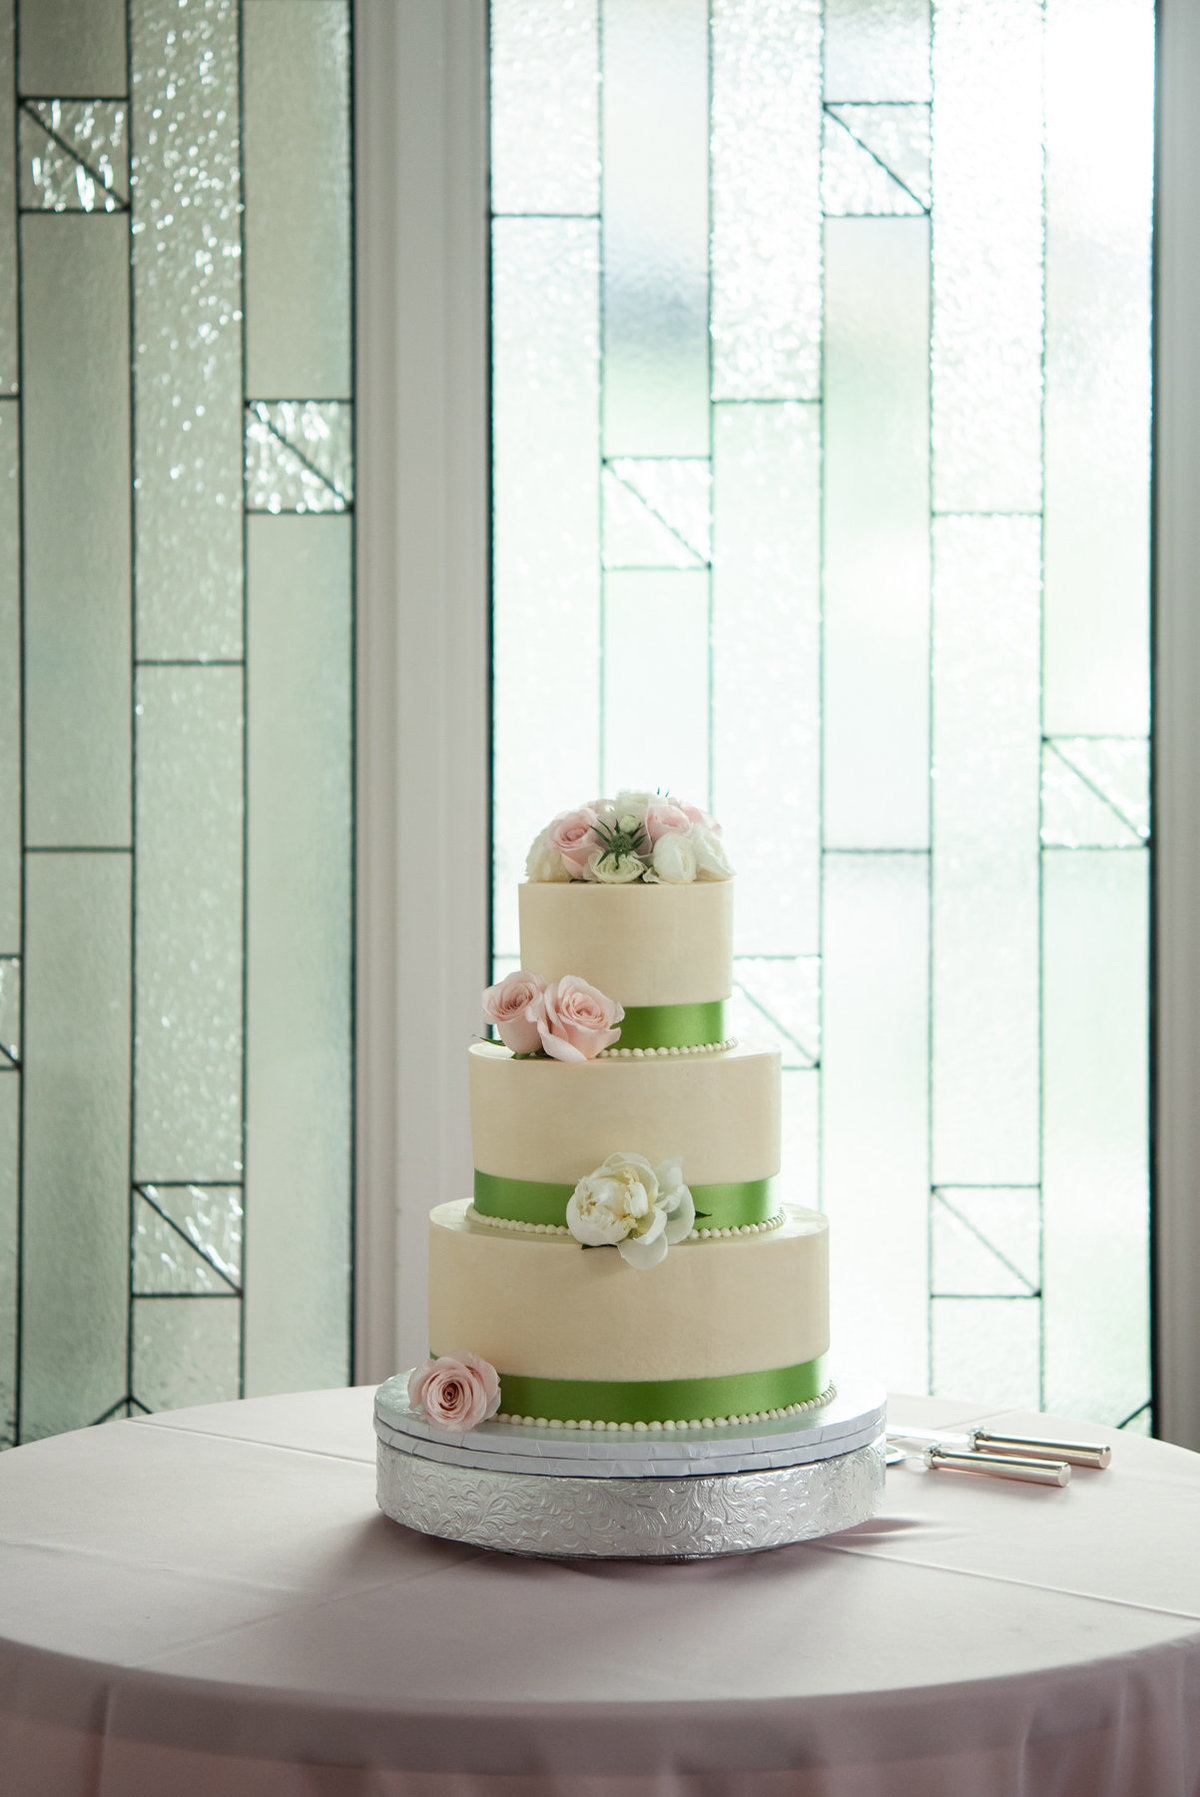 frost bake shop wedding cake